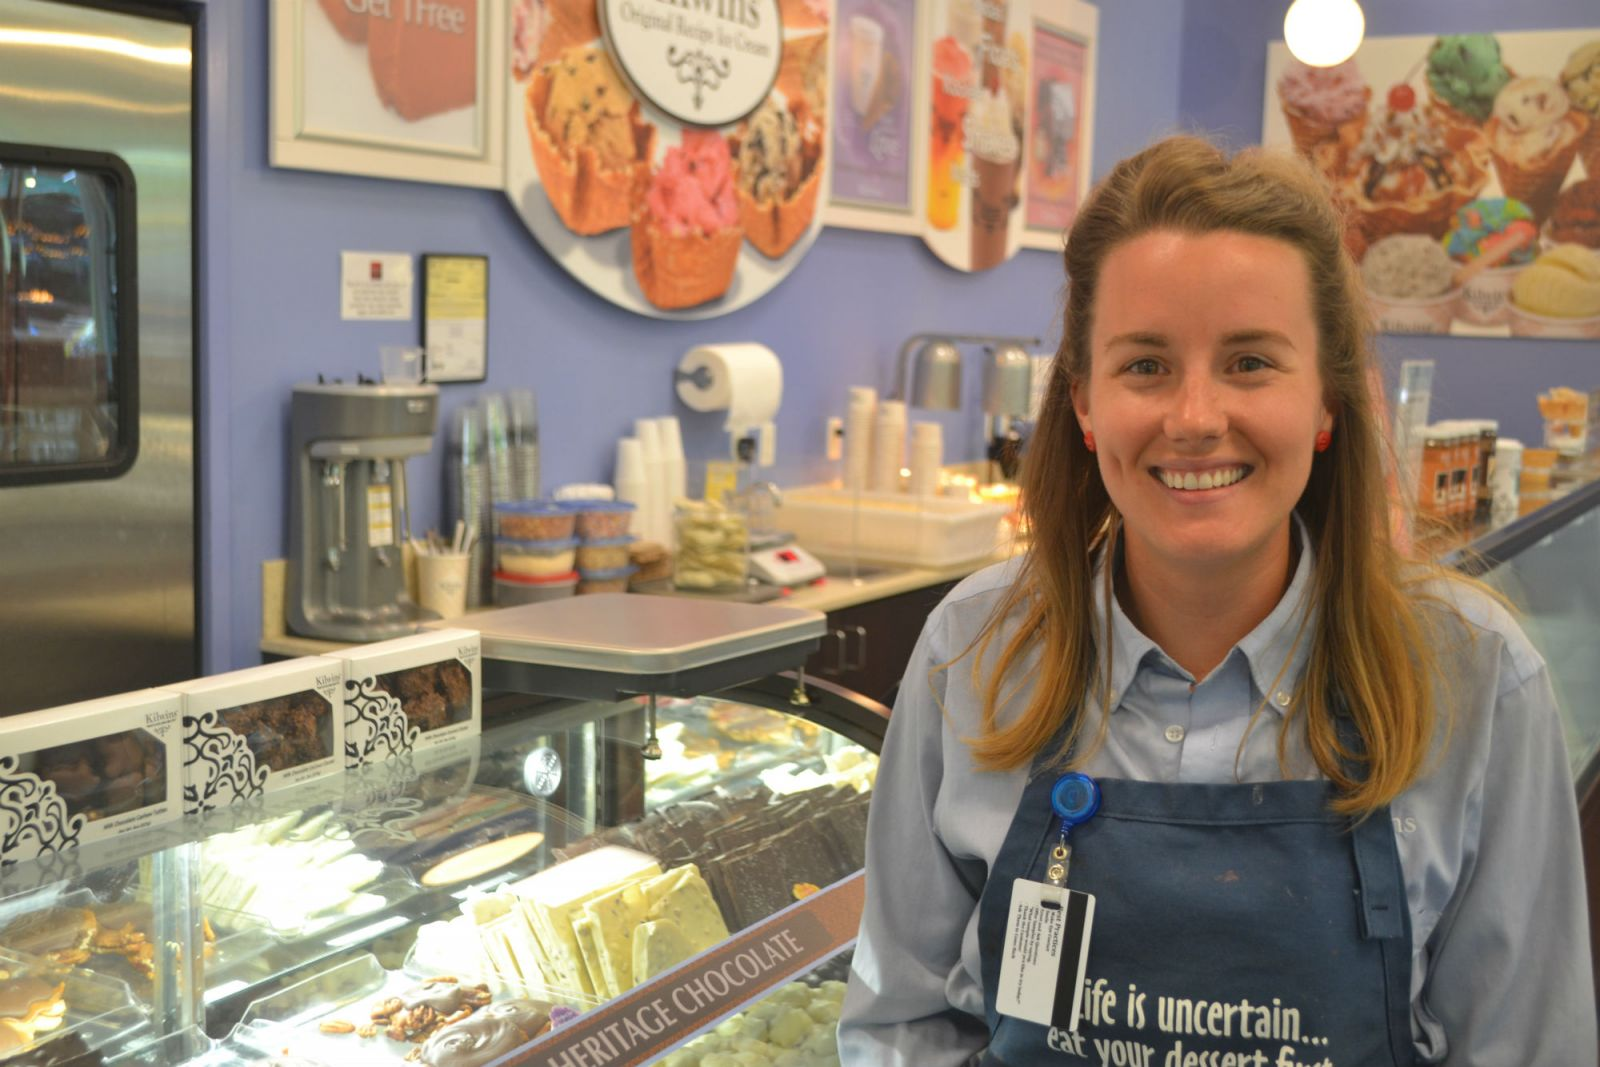 Ashley Clark, co-owner of Kilwins Chocolates, Fudge and Ice Cream at NOMA Square in Greenville, was named the 2018 South Carolina Young Entrepreneur of the Year. (Photo/Teresa Cutlip)